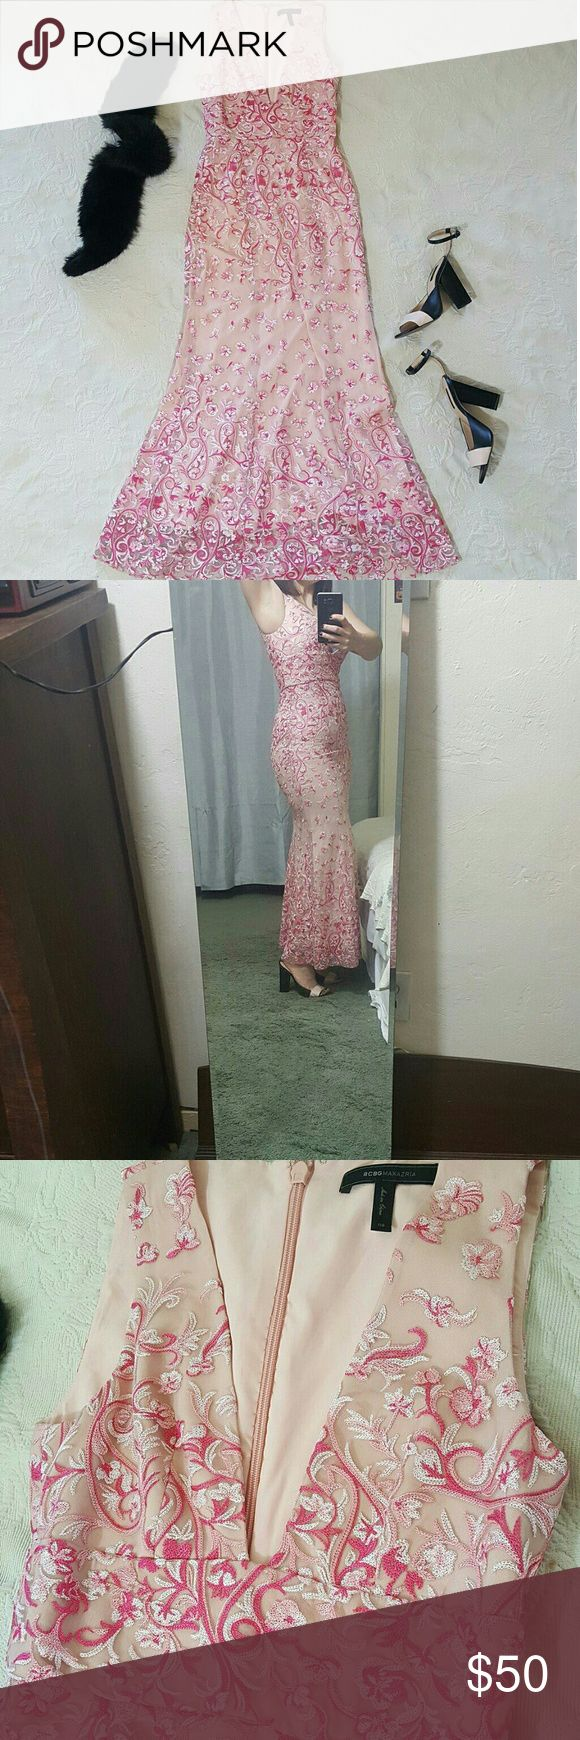 Pink BCBG gown Very beautiful mesh and embroidery gown. Pale and bright pink contrasting floral pattern! Perfect for a wedding or formal event. Size 2 but with PLENTY of stretch! I'm a size 4 and was able to zip it. I couldn't breathe, but it zipped. ;) 56L 14B 17H laid flat. BCBG Dresses